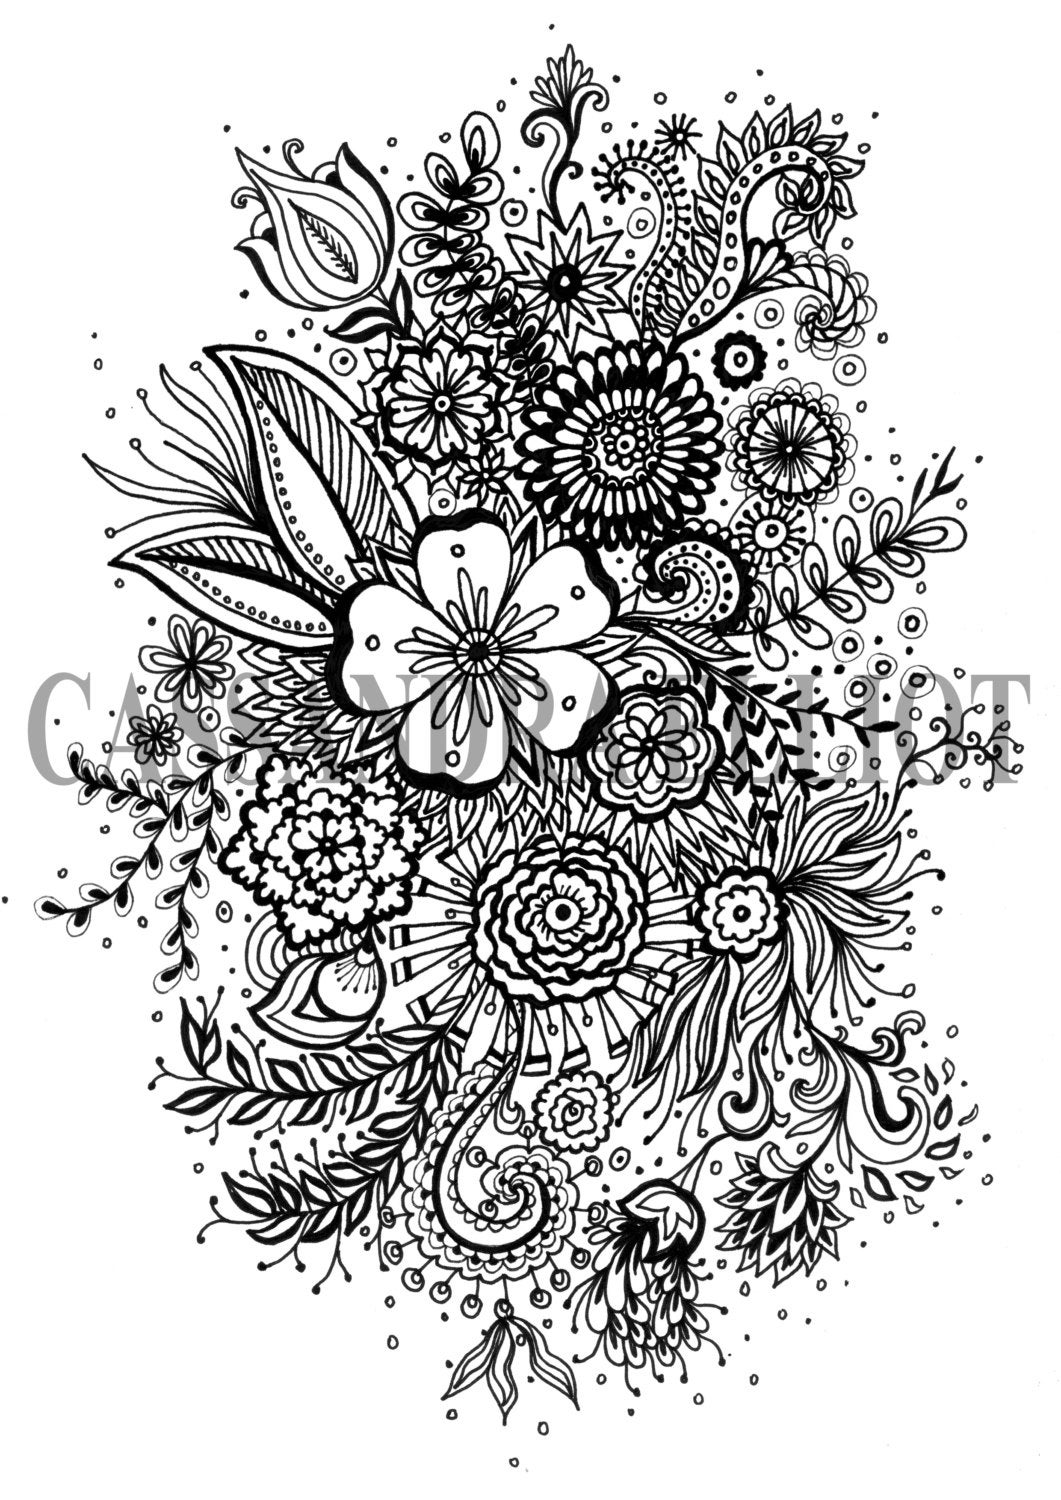 adult coloring pages flowers flowers paisley flowers adult coloring pages page 4 adult coloring pages flowers